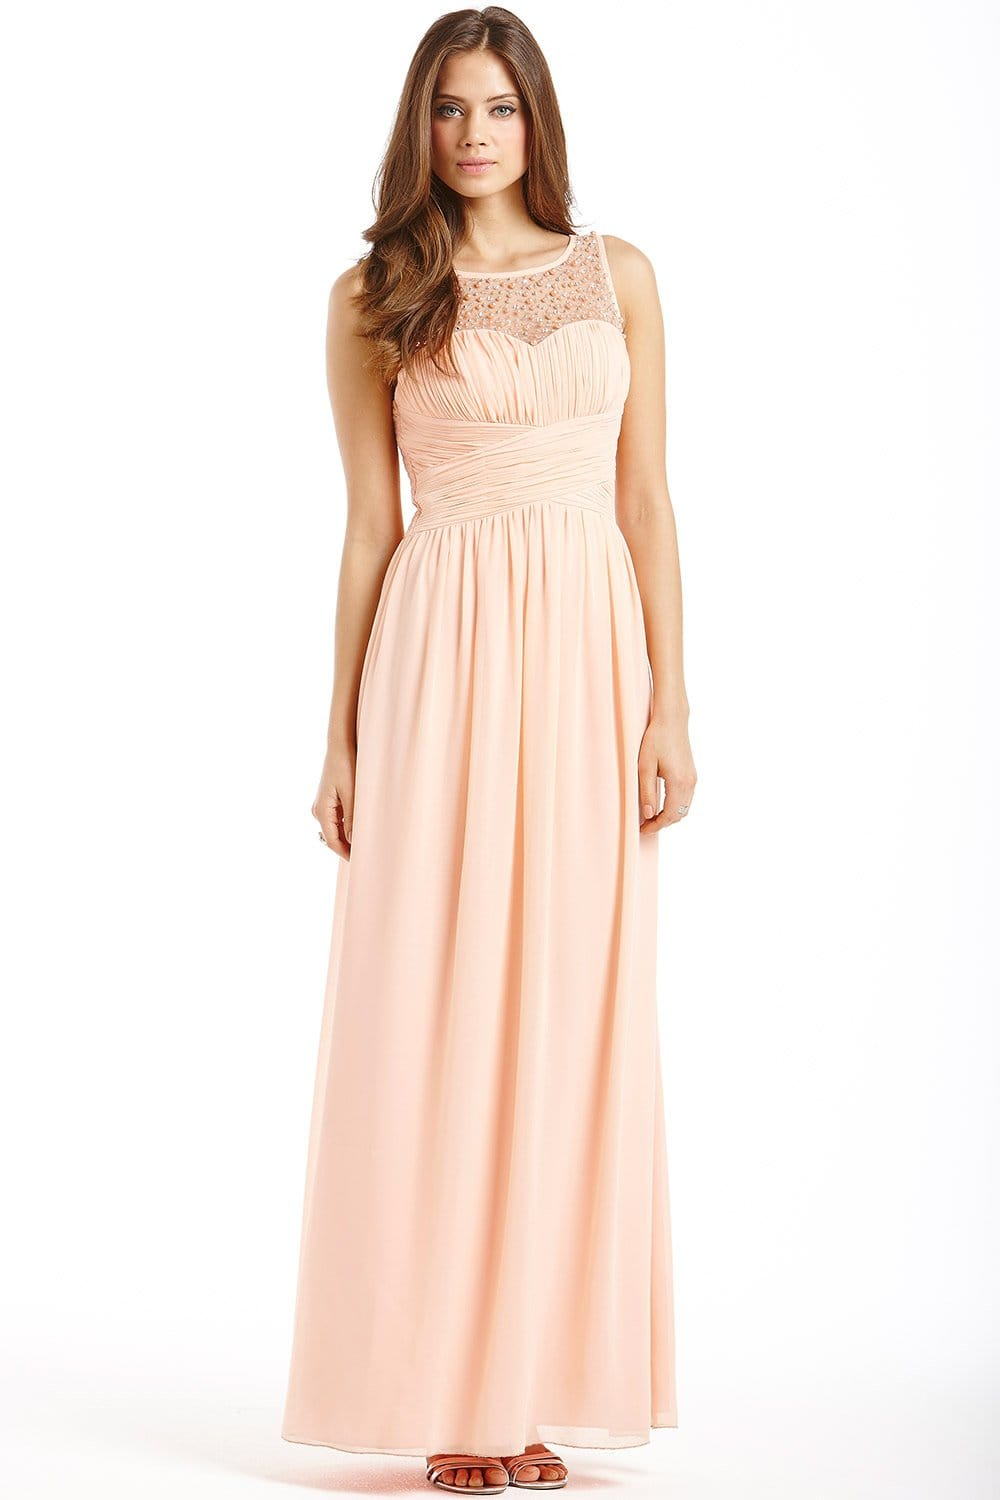 peach embellished detail maxi dress from little mistress uk. Black Bedroom Furniture Sets. Home Design Ideas